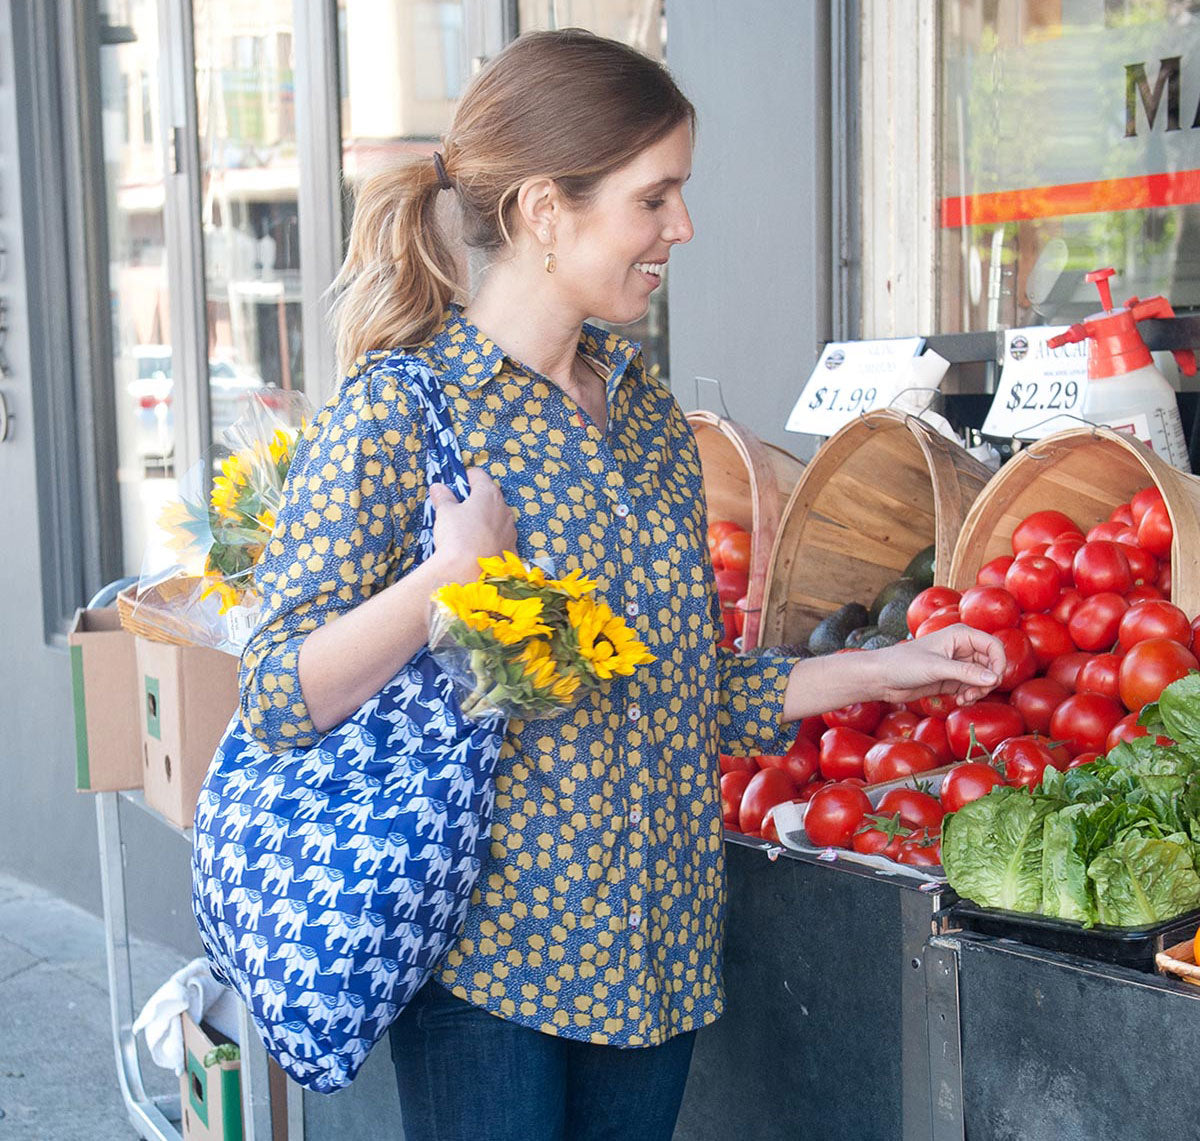 woman grocery shopping at a vegetable stand with a reusable blu bag